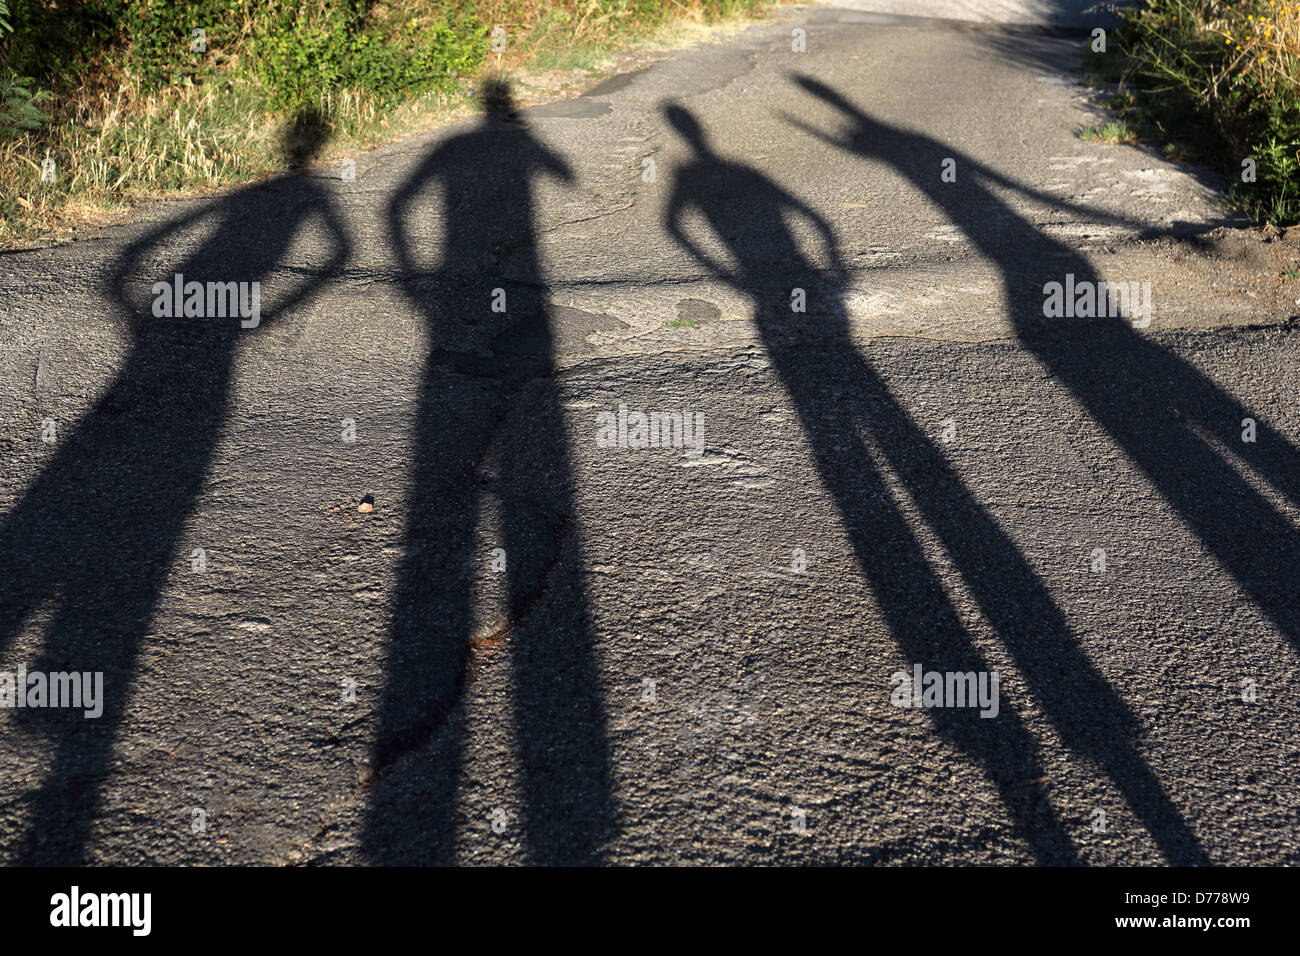 Torre Alfina, Italy, people throw shadows on the asphalt - Stock Image